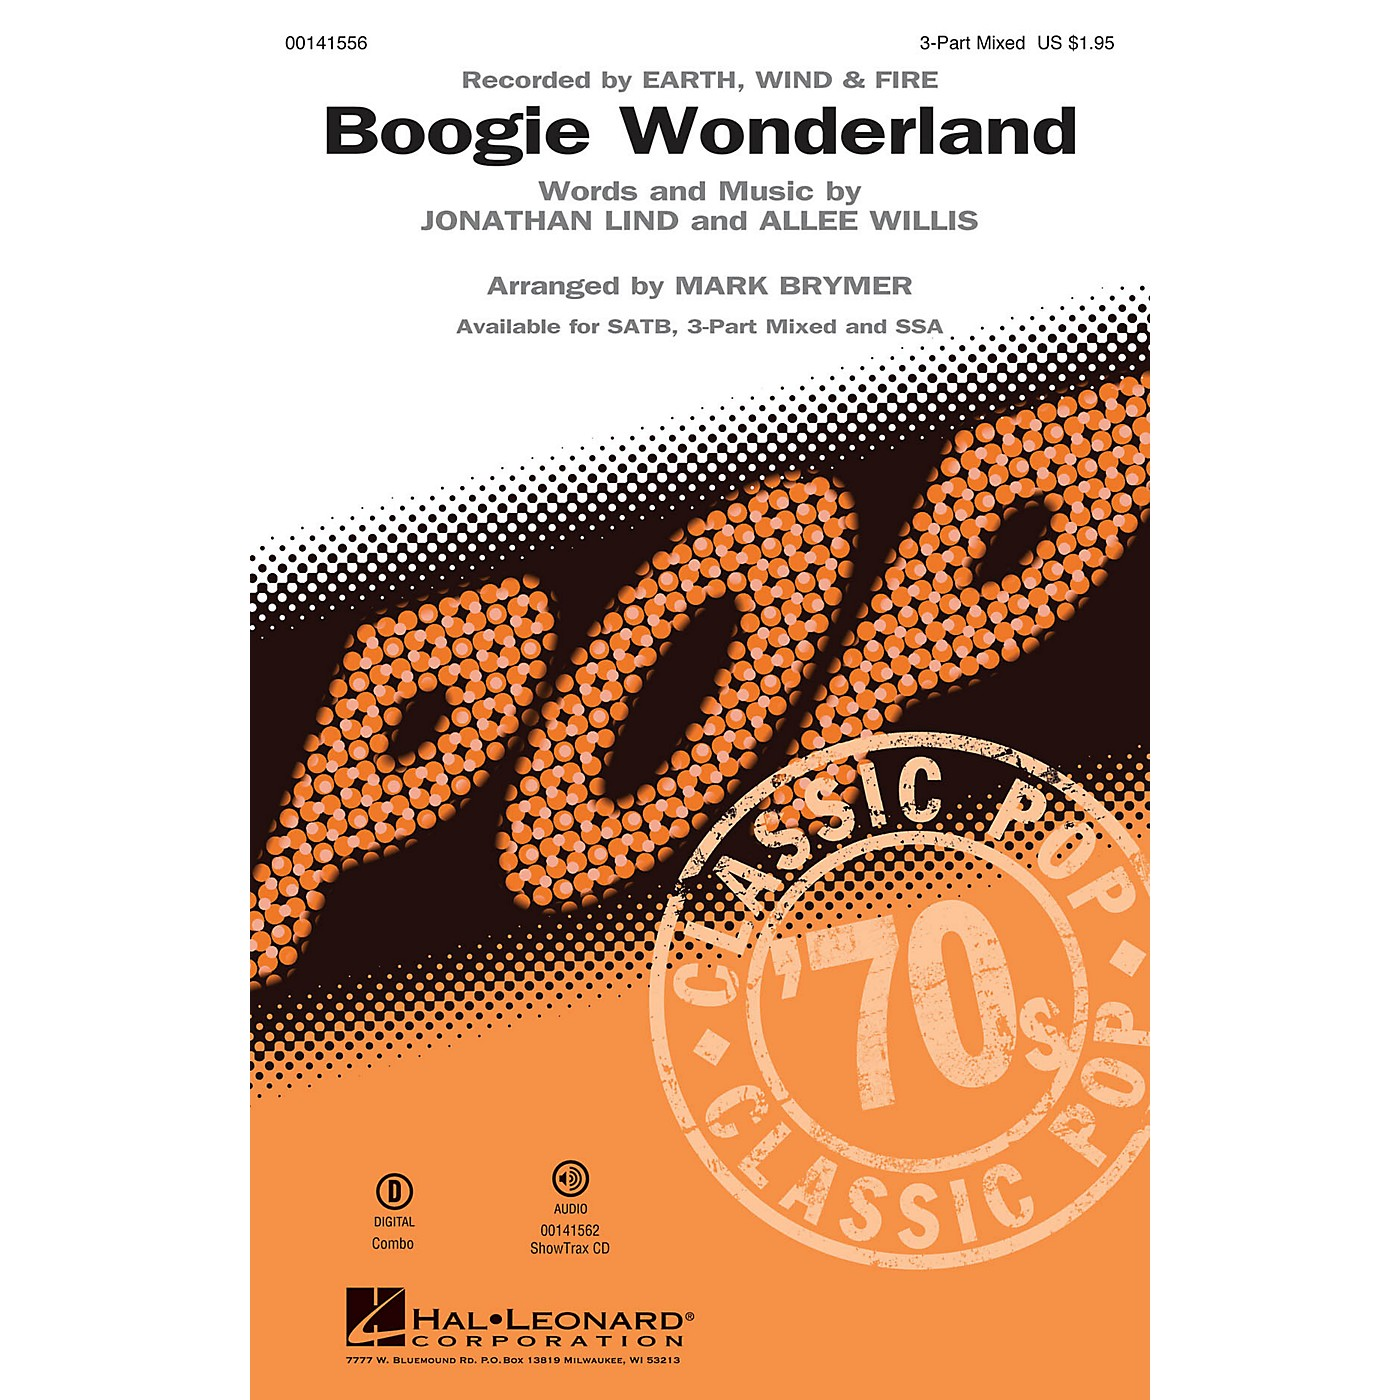 Hal Leonard Boogie Wonderland 3-Part Mixed by Earth, Wind and Fire arranged by Mark Brymer thumbnail